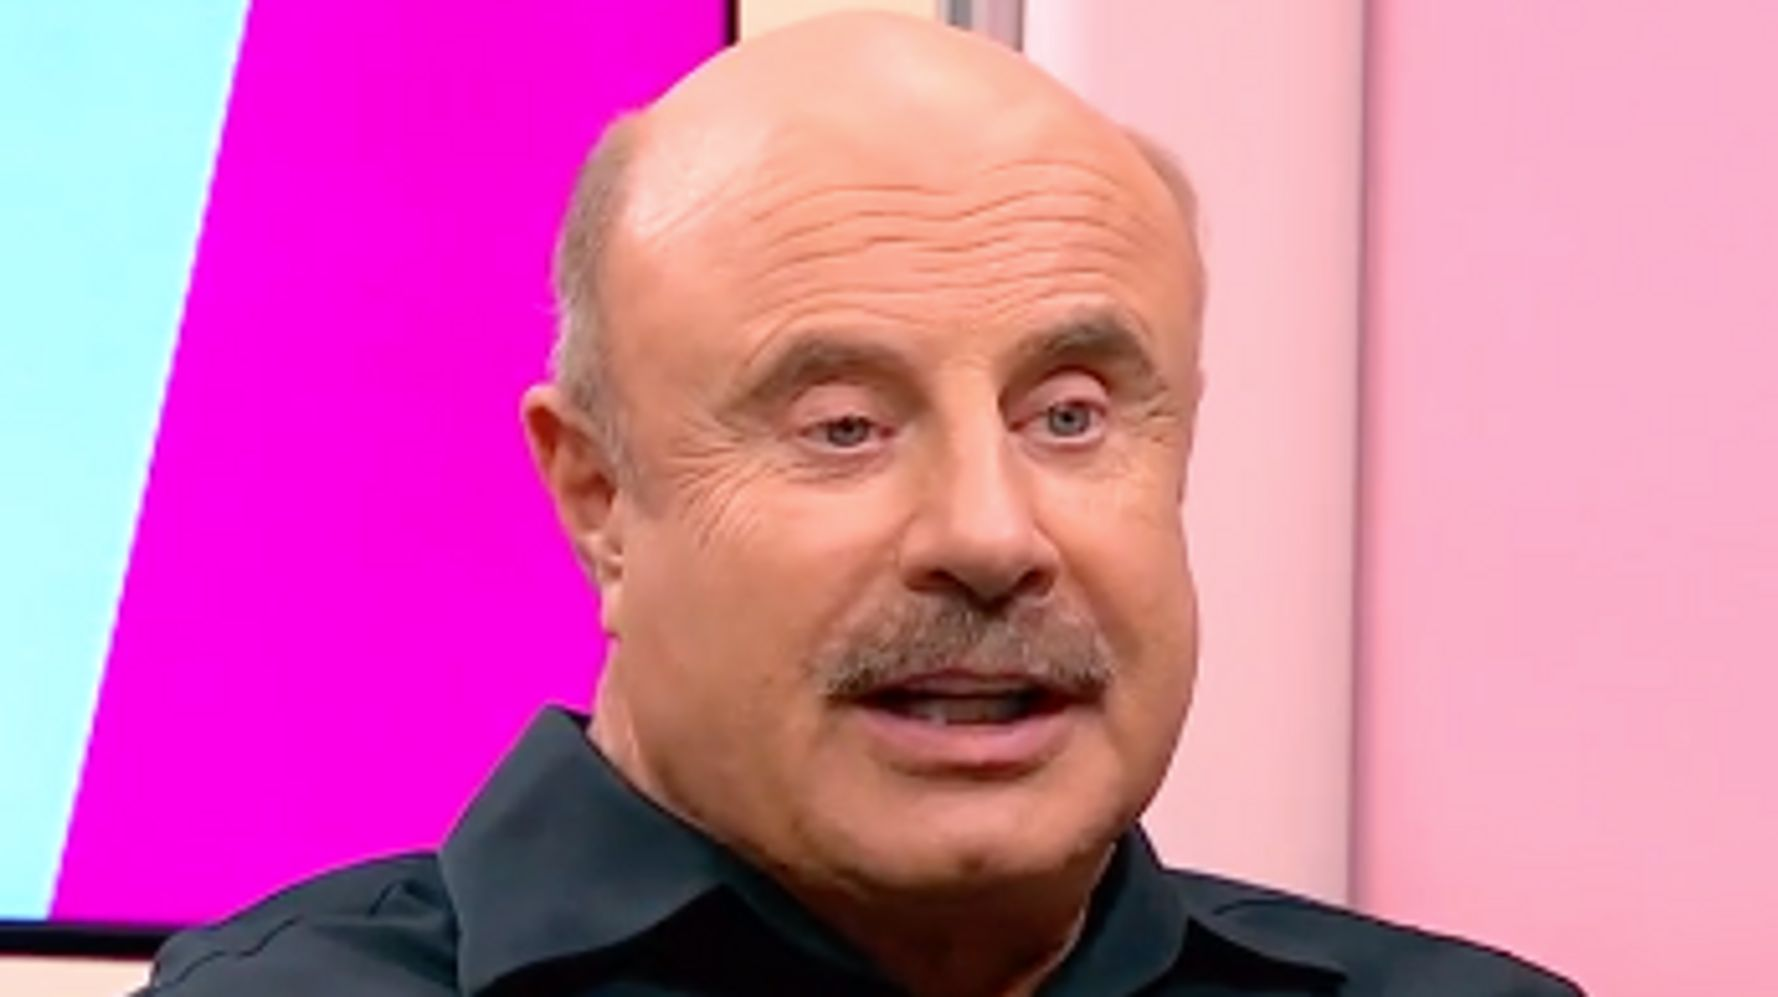 Westlake Legal Group 5cc2b8b92400008b00232d11 Dr. Phil Cries 'Bulls**t' On Reports He Spoiled A Celebrity Wedding